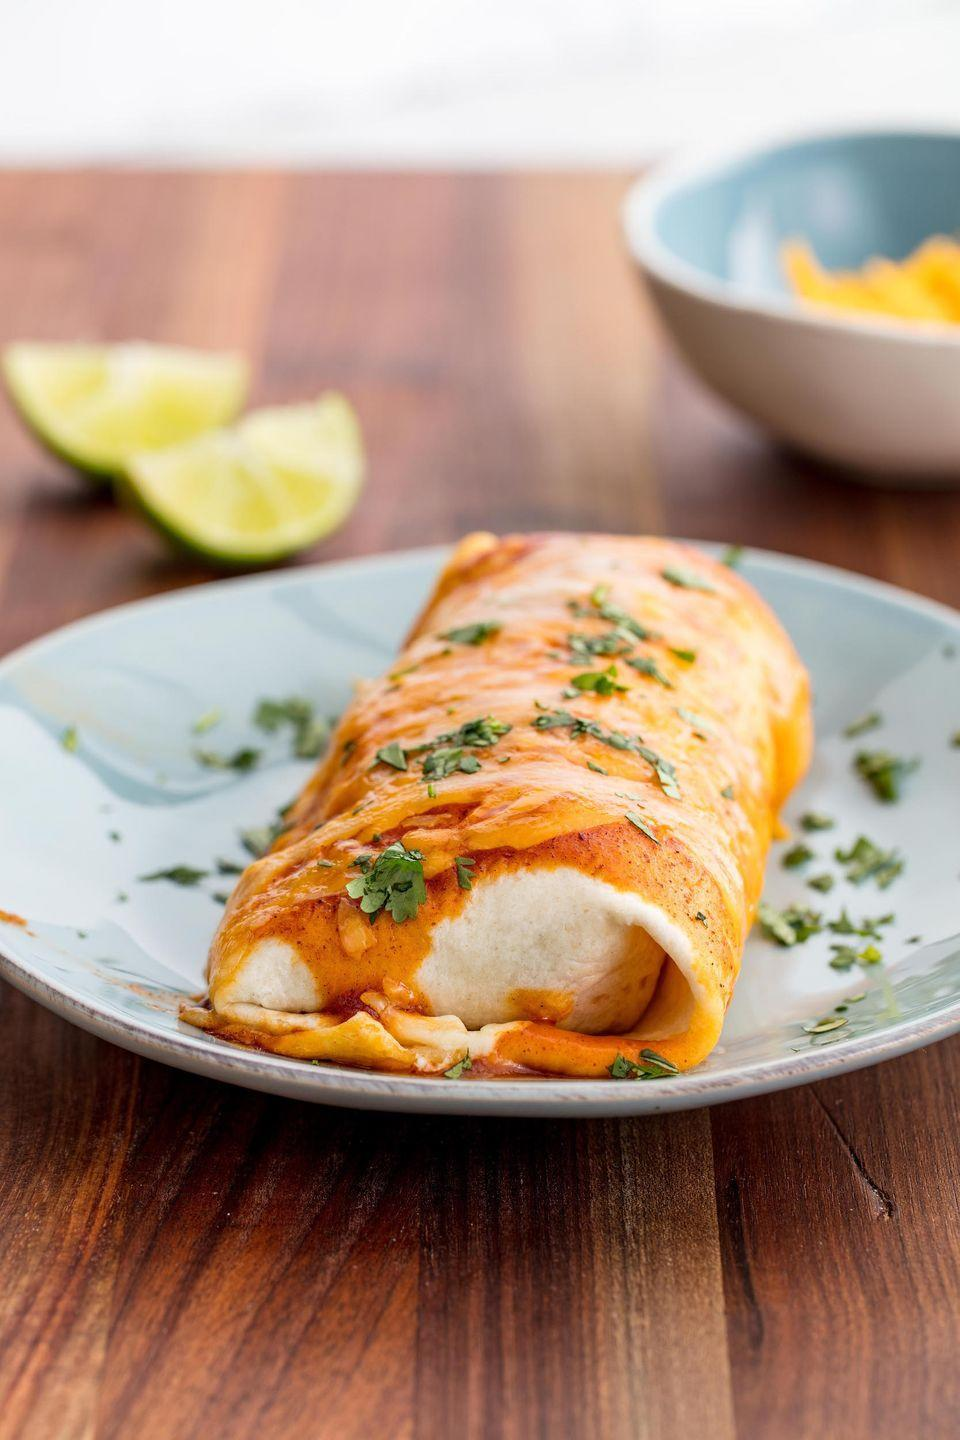 """<p>These will ruin all other burritos for you.</p><p>Get the recipe from <a href=""""https://www.delish.com/cooking/recipe-ideas/recipes/a49705/cheesy-baked-burritos-recipe/"""" rel=""""nofollow noopener"""" target=""""_blank"""" data-ylk=""""slk:Delish"""" class=""""link rapid-noclick-resp"""">Delish</a>.</p>"""